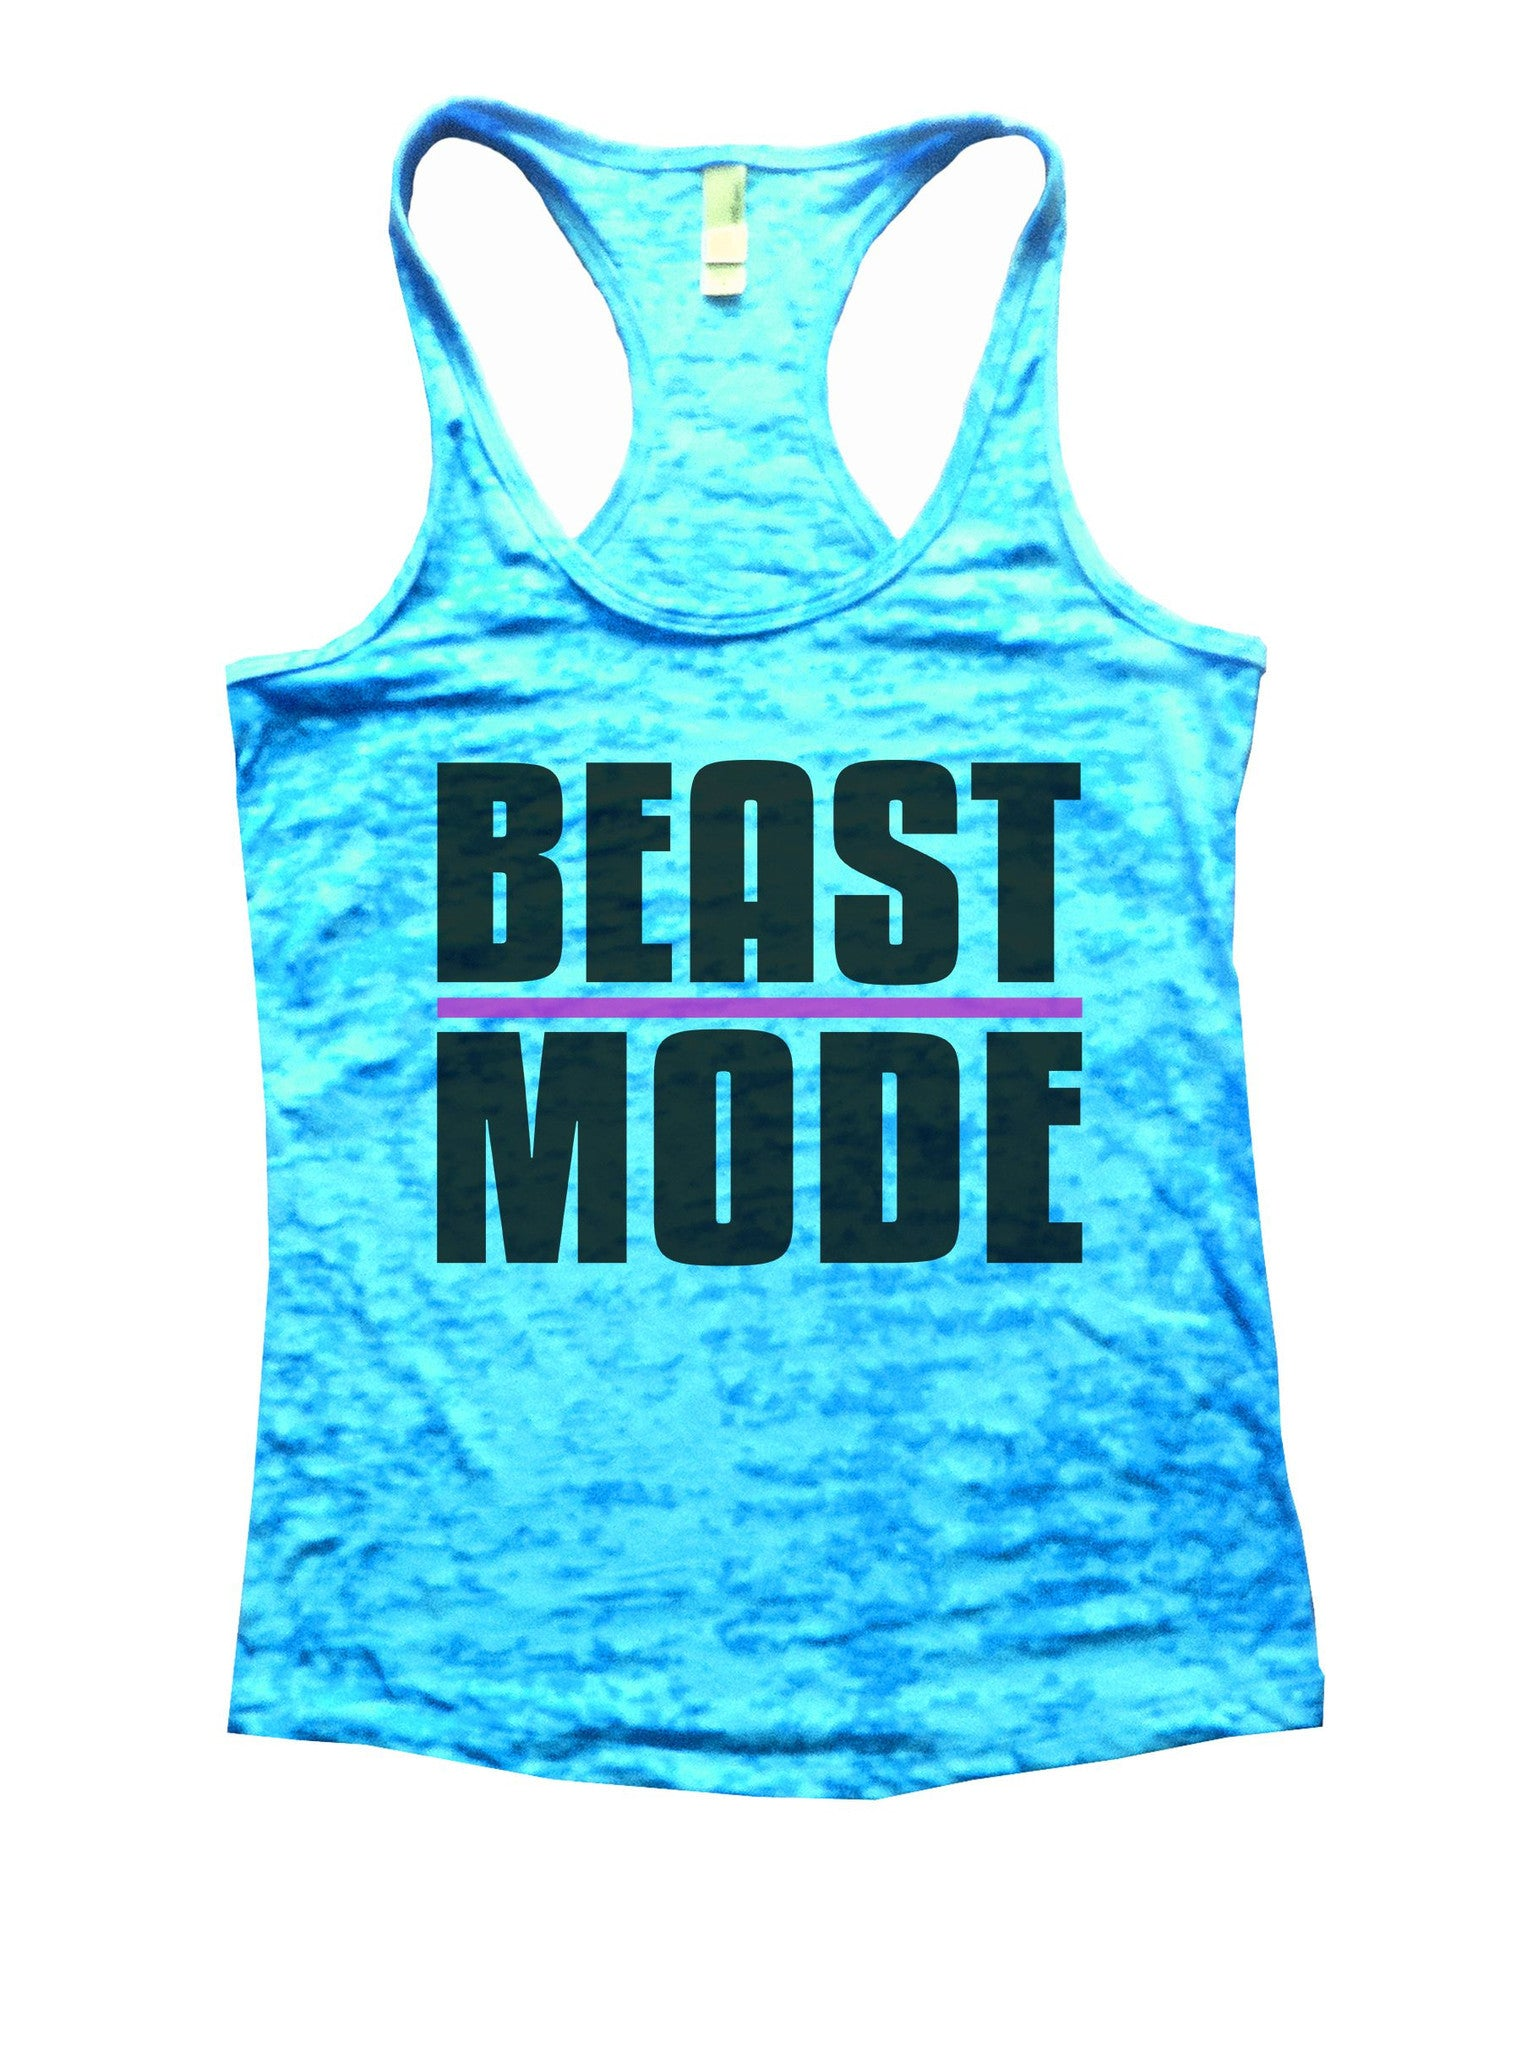 Beast Mode Burnout Tank Top By BurnoutTankTops.com - 1107 - Funny Shirts Tank Tops Burnouts and Triblends  - 5